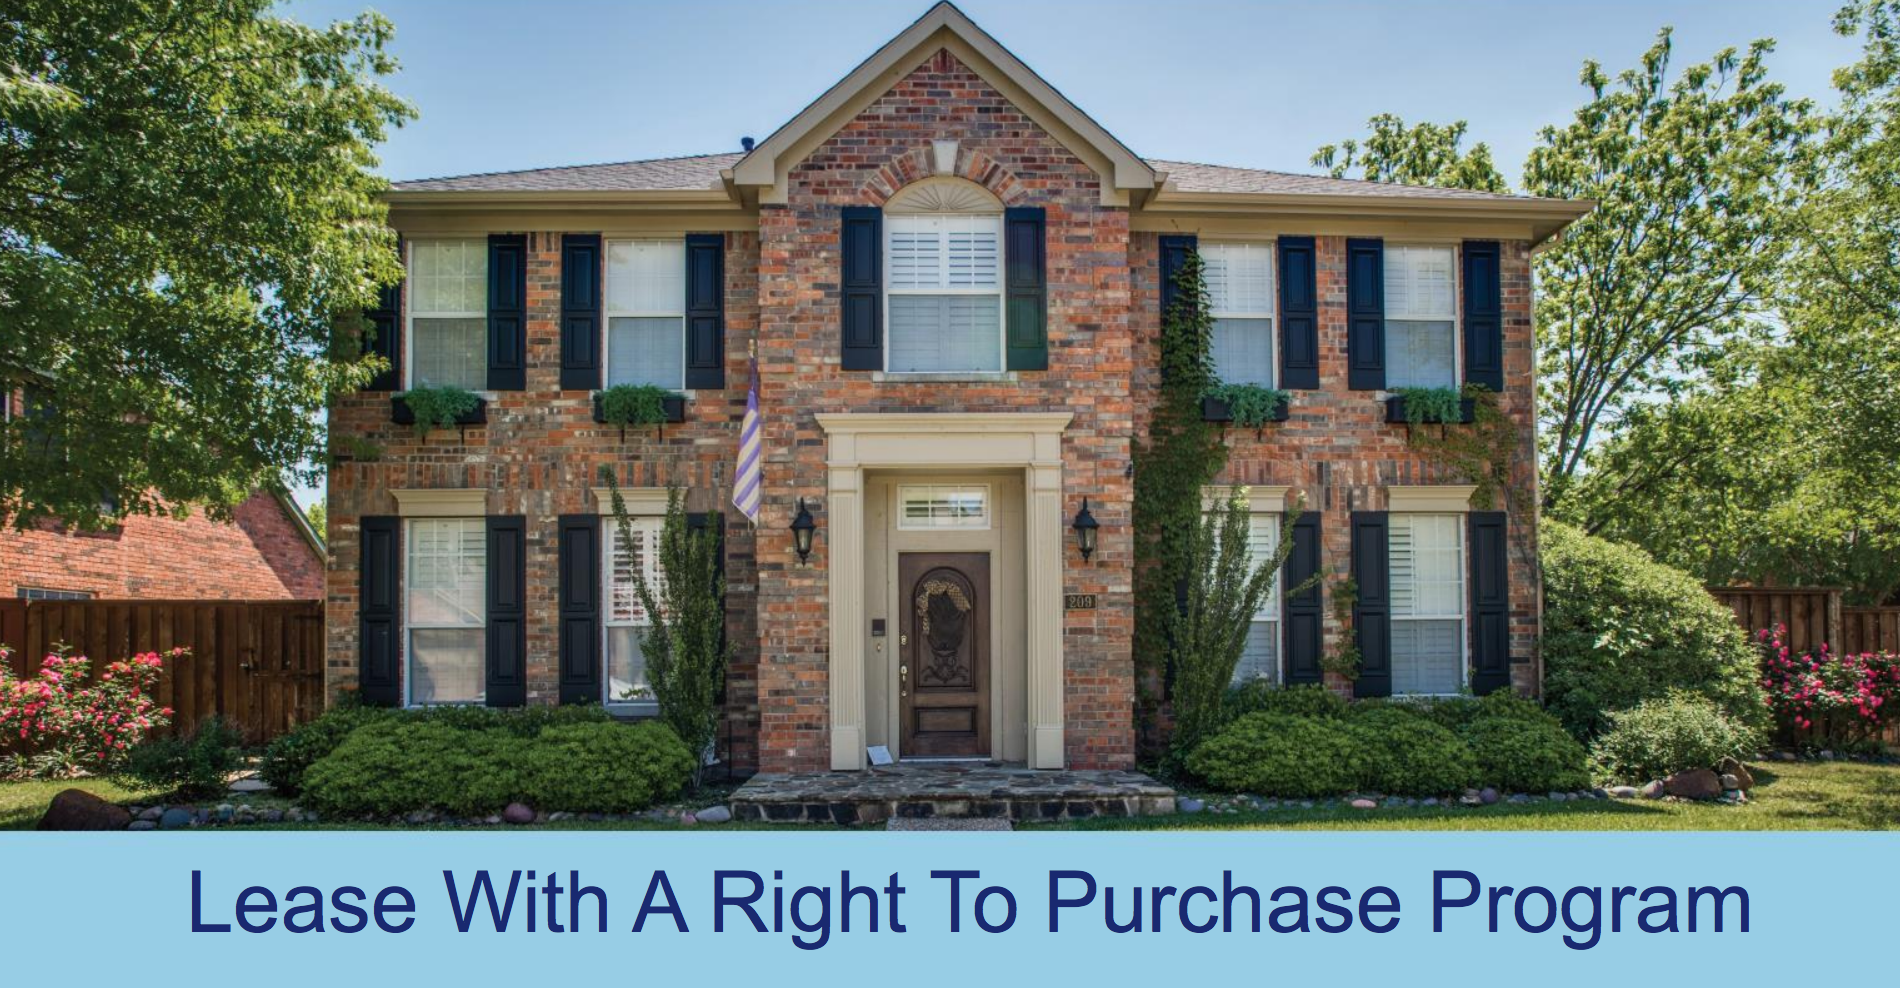 Lease with a Right to Purchase